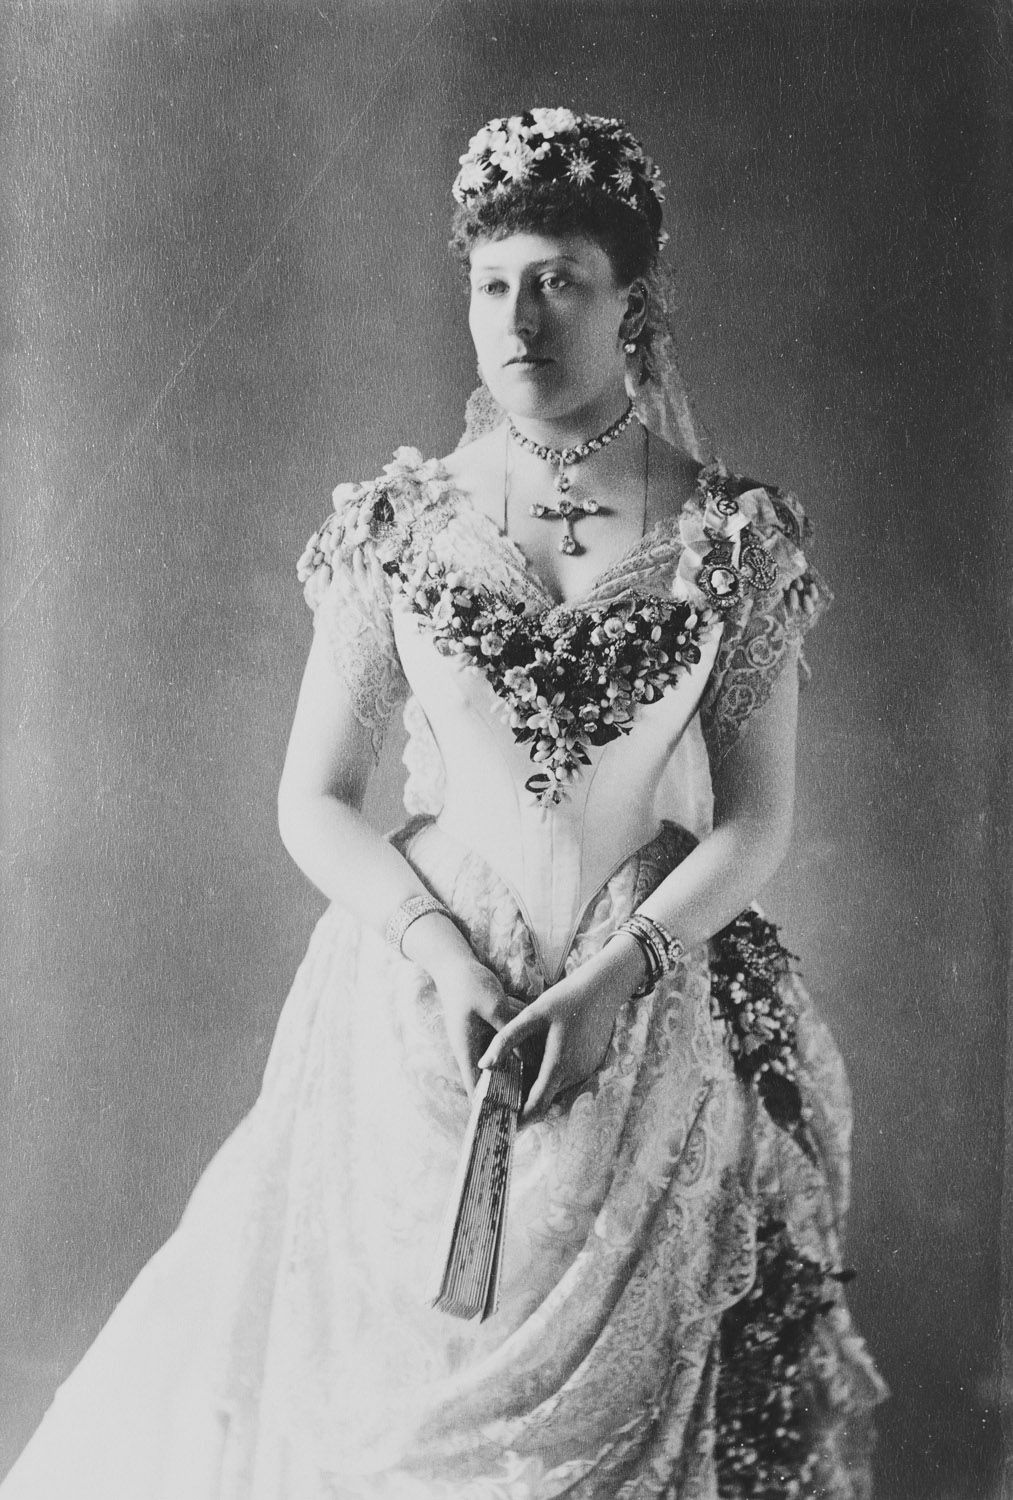 Princess Beatrice (18571944) in her wedding dress, July